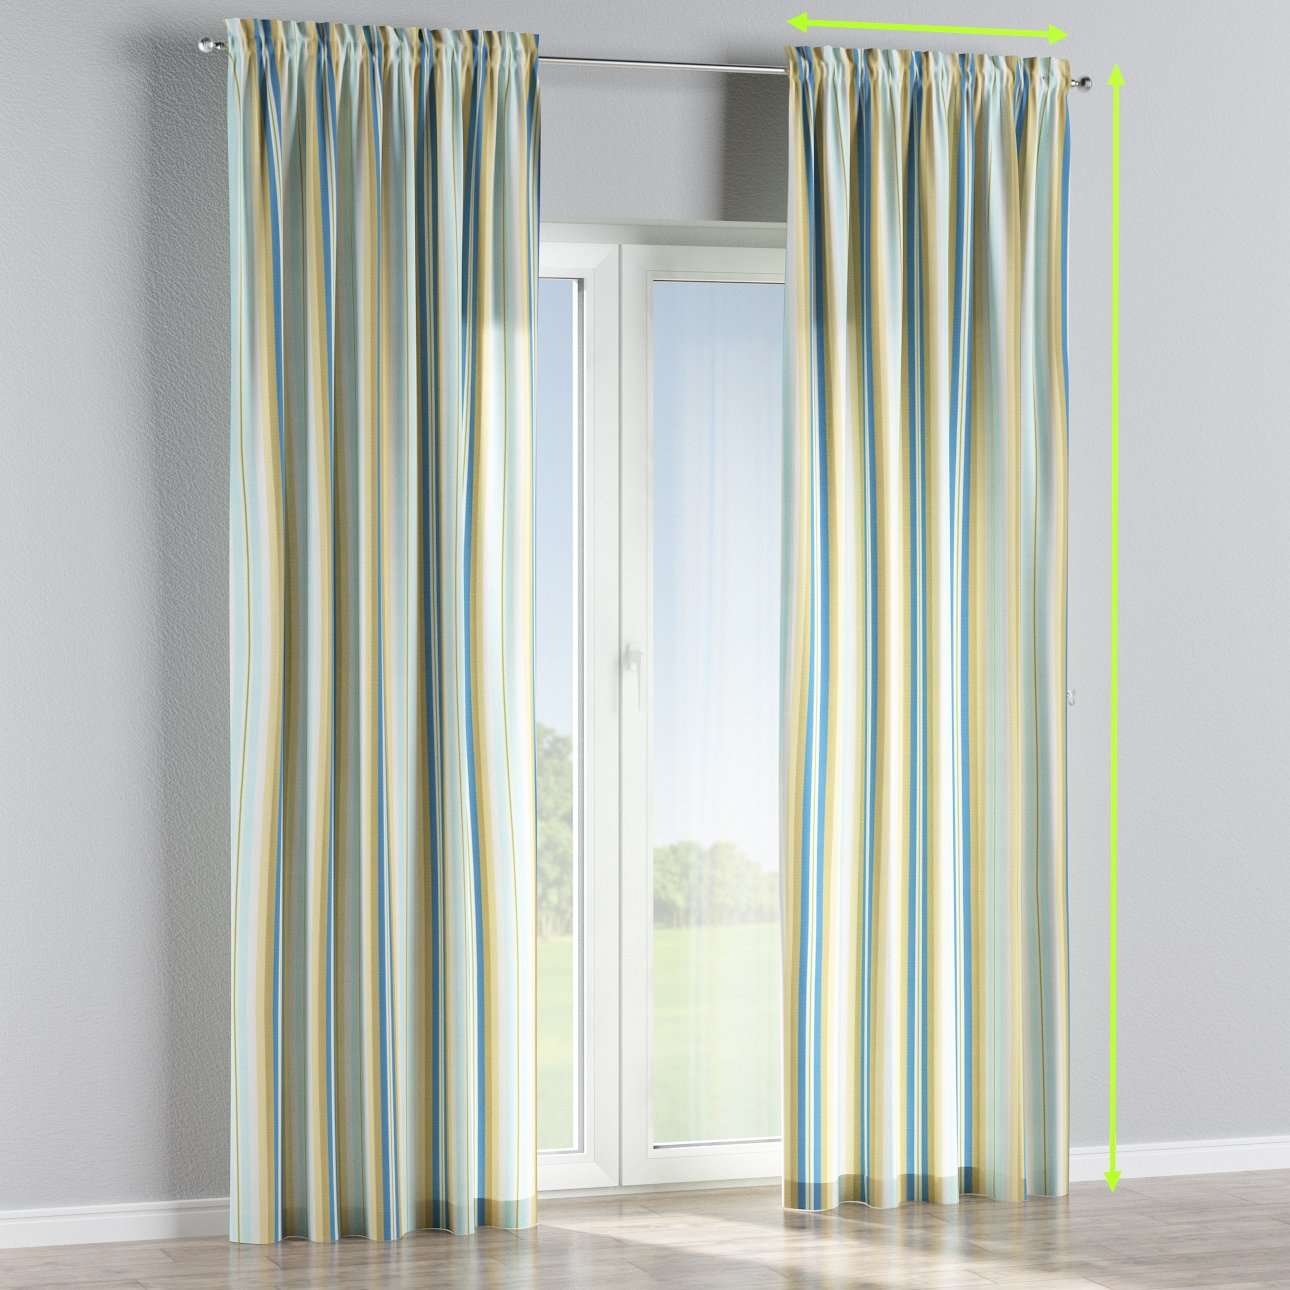 Slot and frill lined curtains in collection Mirella, fabric: 141-17